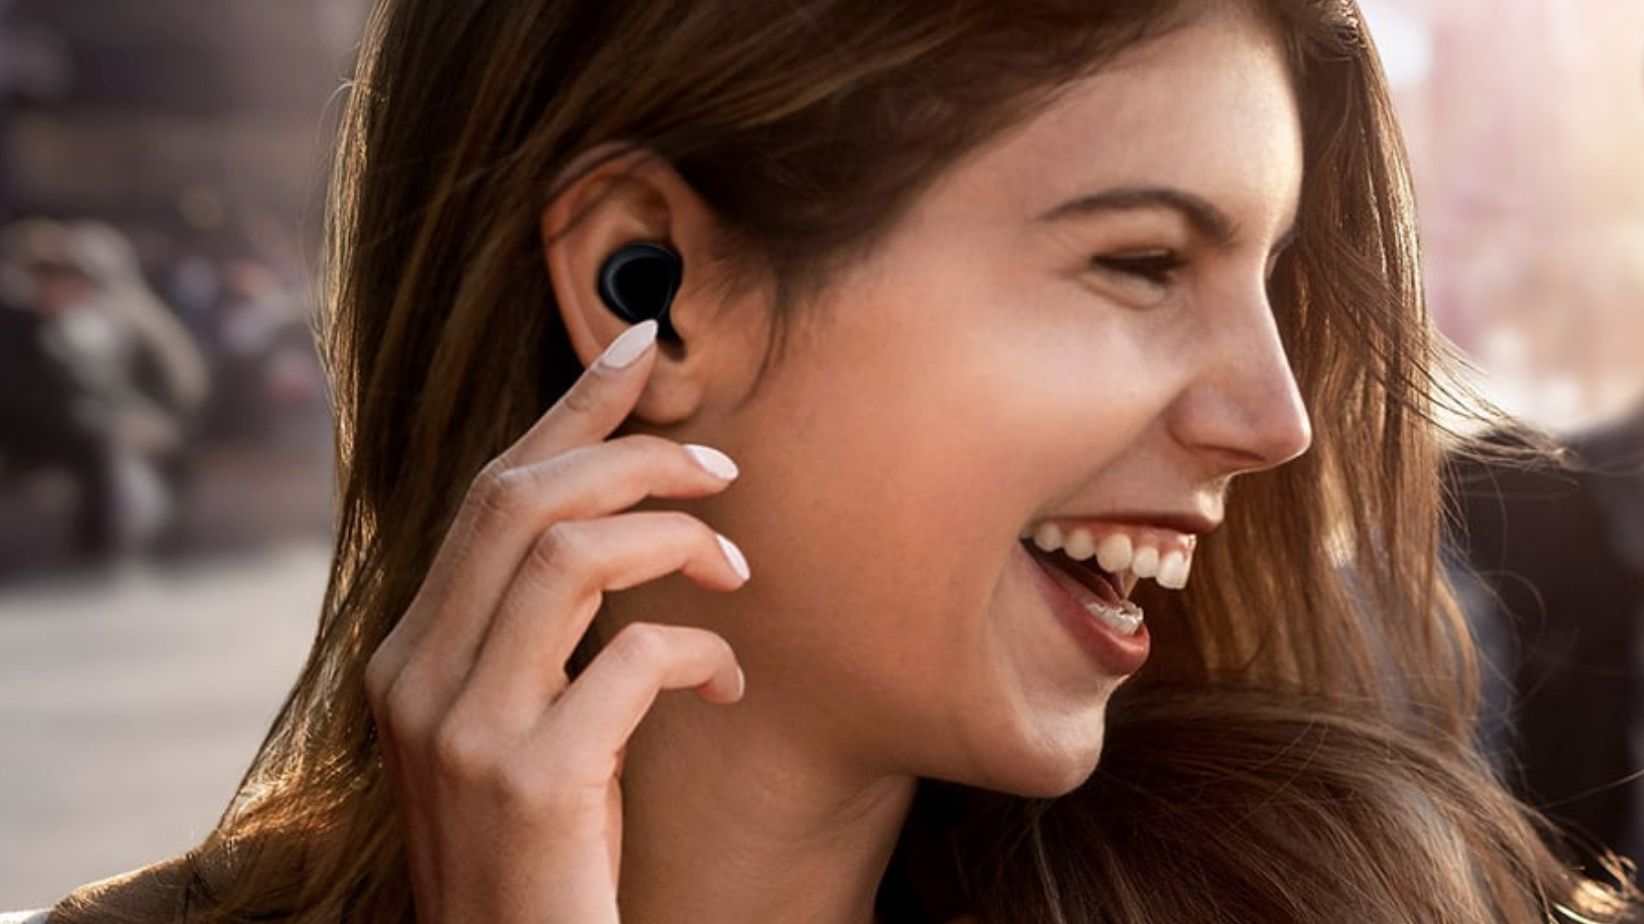 Samsung Galaxy Buds update includes hands-free Bixby voice